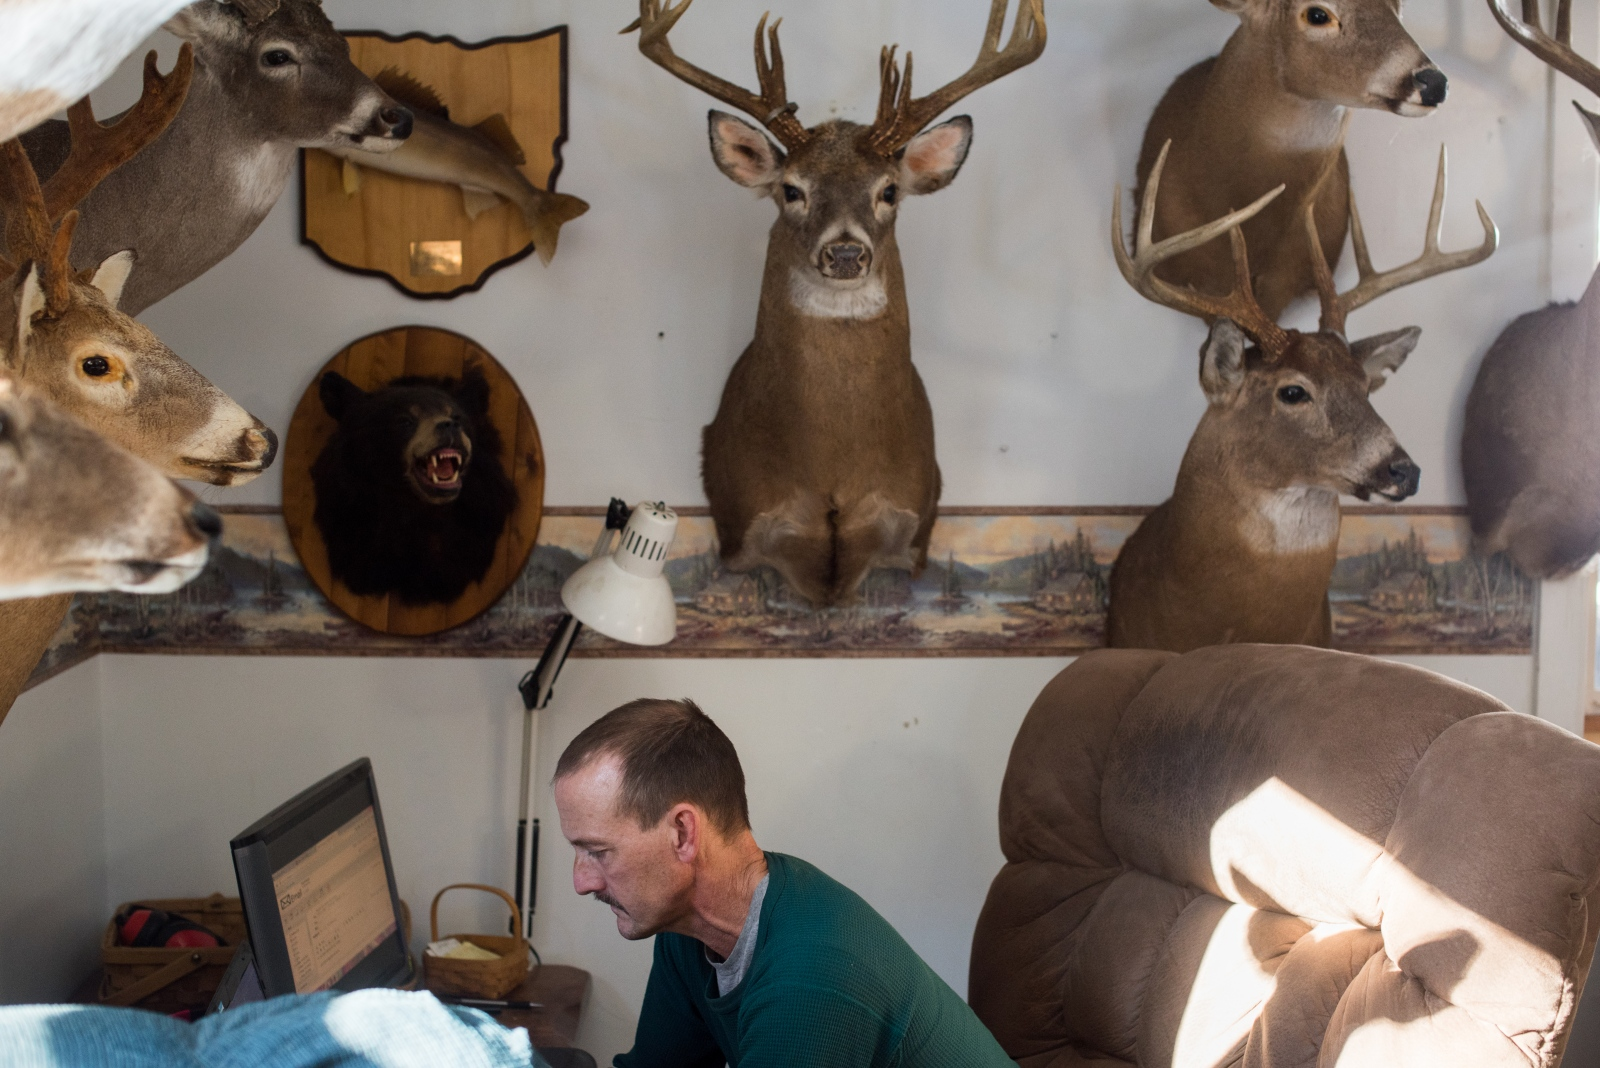 Dave Rupe types on his computer beneath his collection of deer mounts at his home two miles outside the center of the village of Coolville, Ohio, in February 2015. Rupe, who has lived in the area his whole life, is a skilled craftsman and makes a living by both selling his wares and by finding and reselling online items ranging from old farm equipment to unwanted animals mounts—though those on his wall are not for sale.